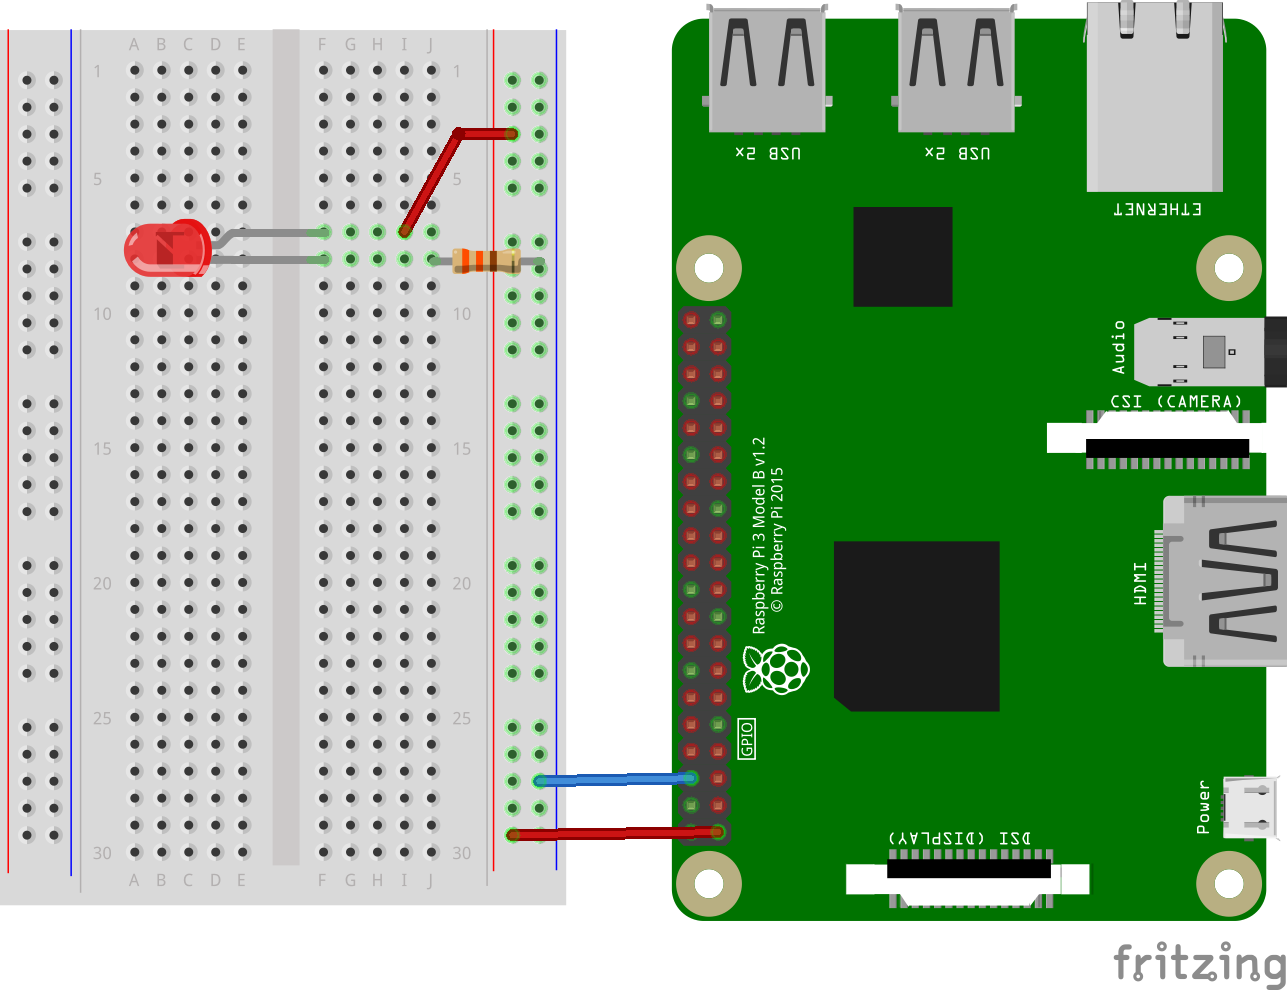 Breadboard Tutorial Learn Electronics With Raspberry Pi The Magpi Wiring Diagram For Poe Camera Get Free Image About So We Use Visual Diagrams Like This Complete Uses Power And Ground Pins From A To Light Up An Led